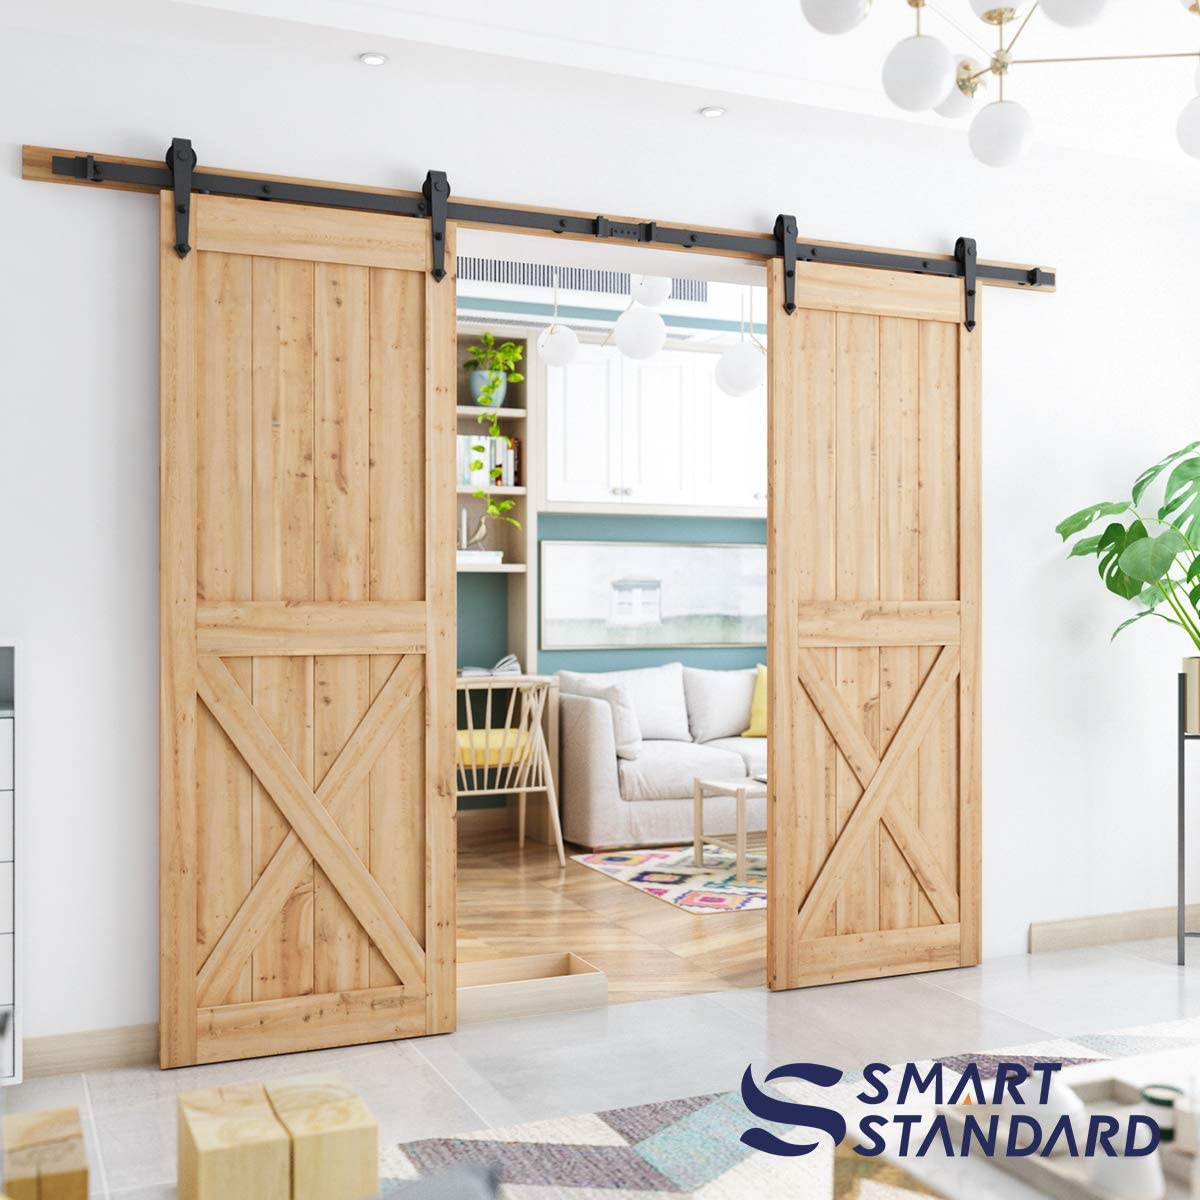 Arrow Shape Hanger Two-Piece Rail Black Super Smoothly and Quietly SMARTSTANDARD 10FT Heavy Duty Double Gate Sliding Barn Door Hardware Kit Fit 30 Wide WoodPanel Easy to Install